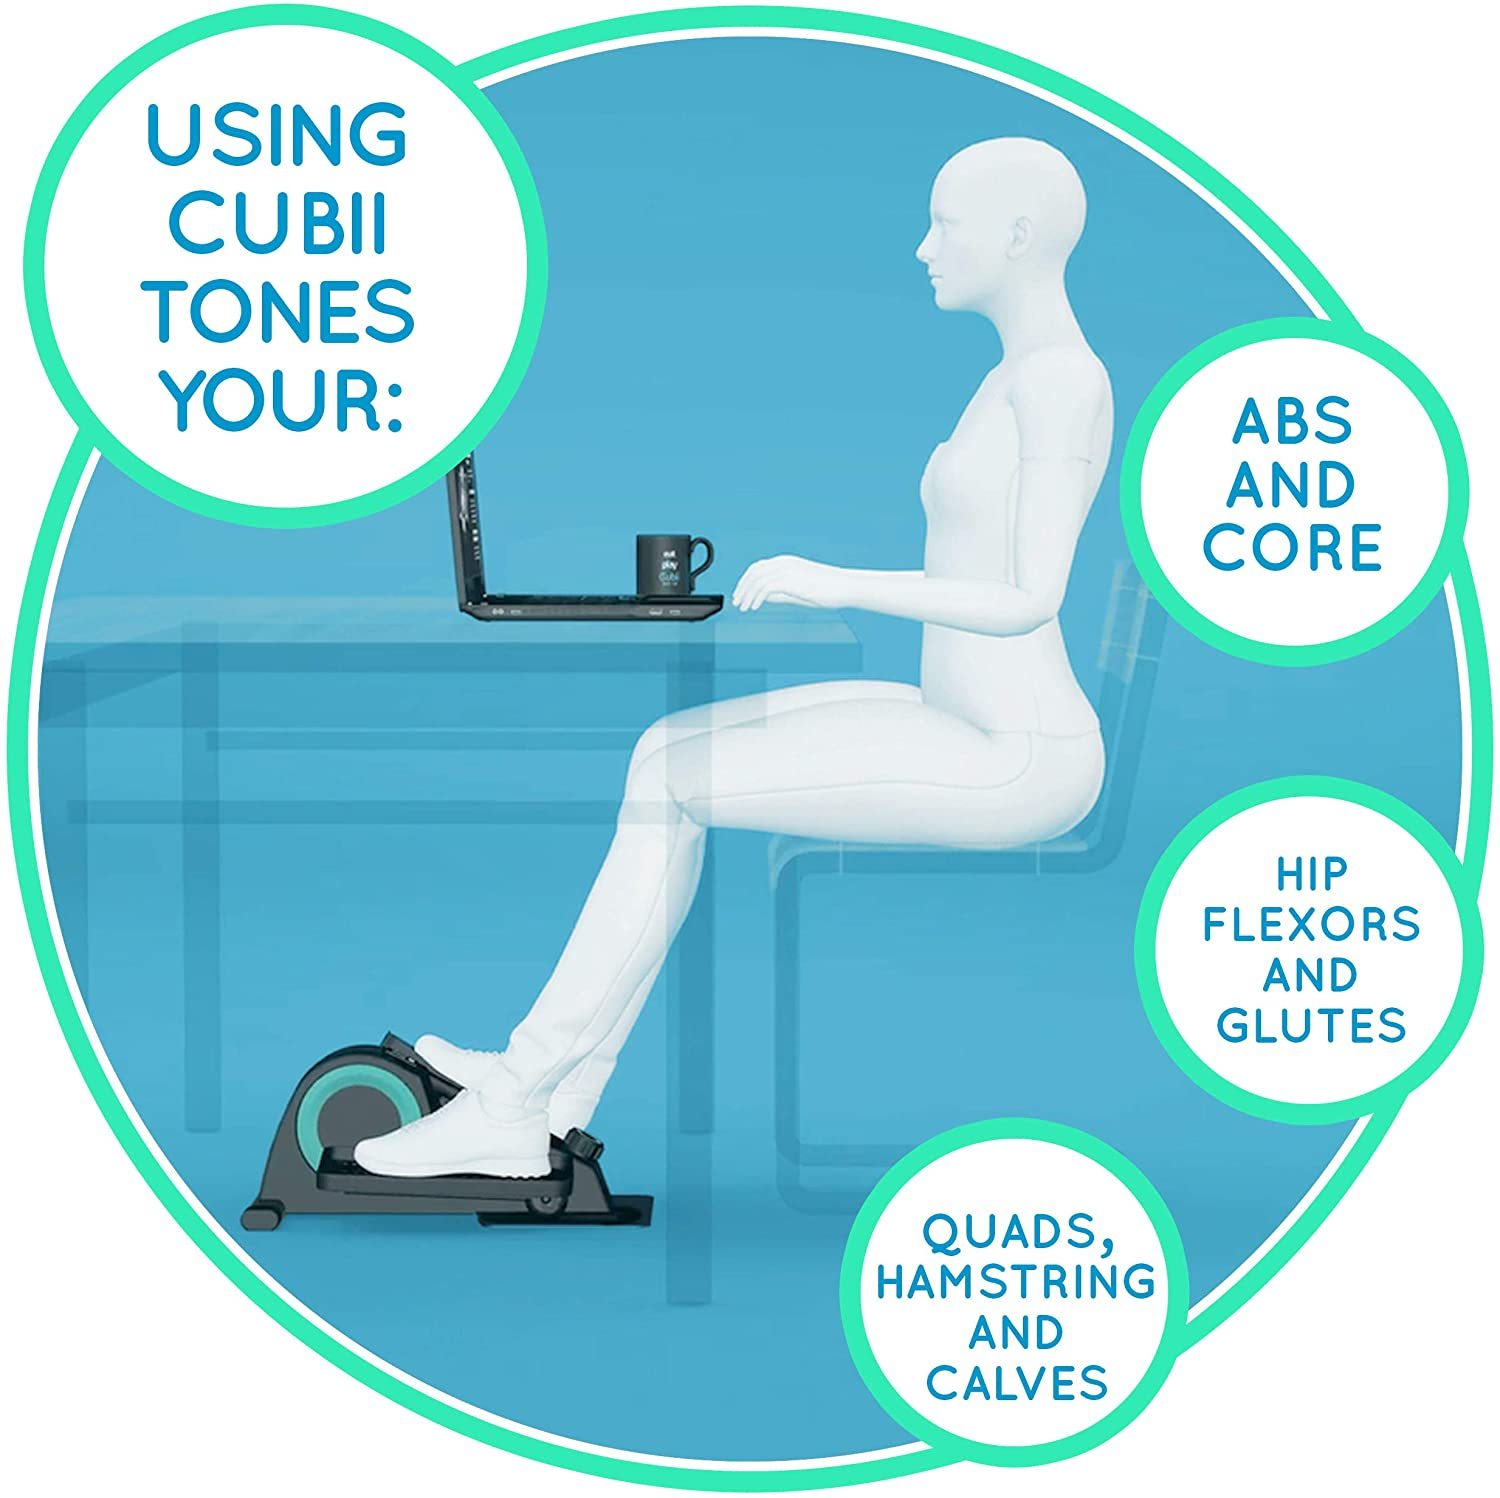 Jr. - Seated Under-Desk Elliptical - Get Fit While You Sit - Built-in Display Monitor - Whisper-Quiet - Adjustable Resistance - Easy to Assemble